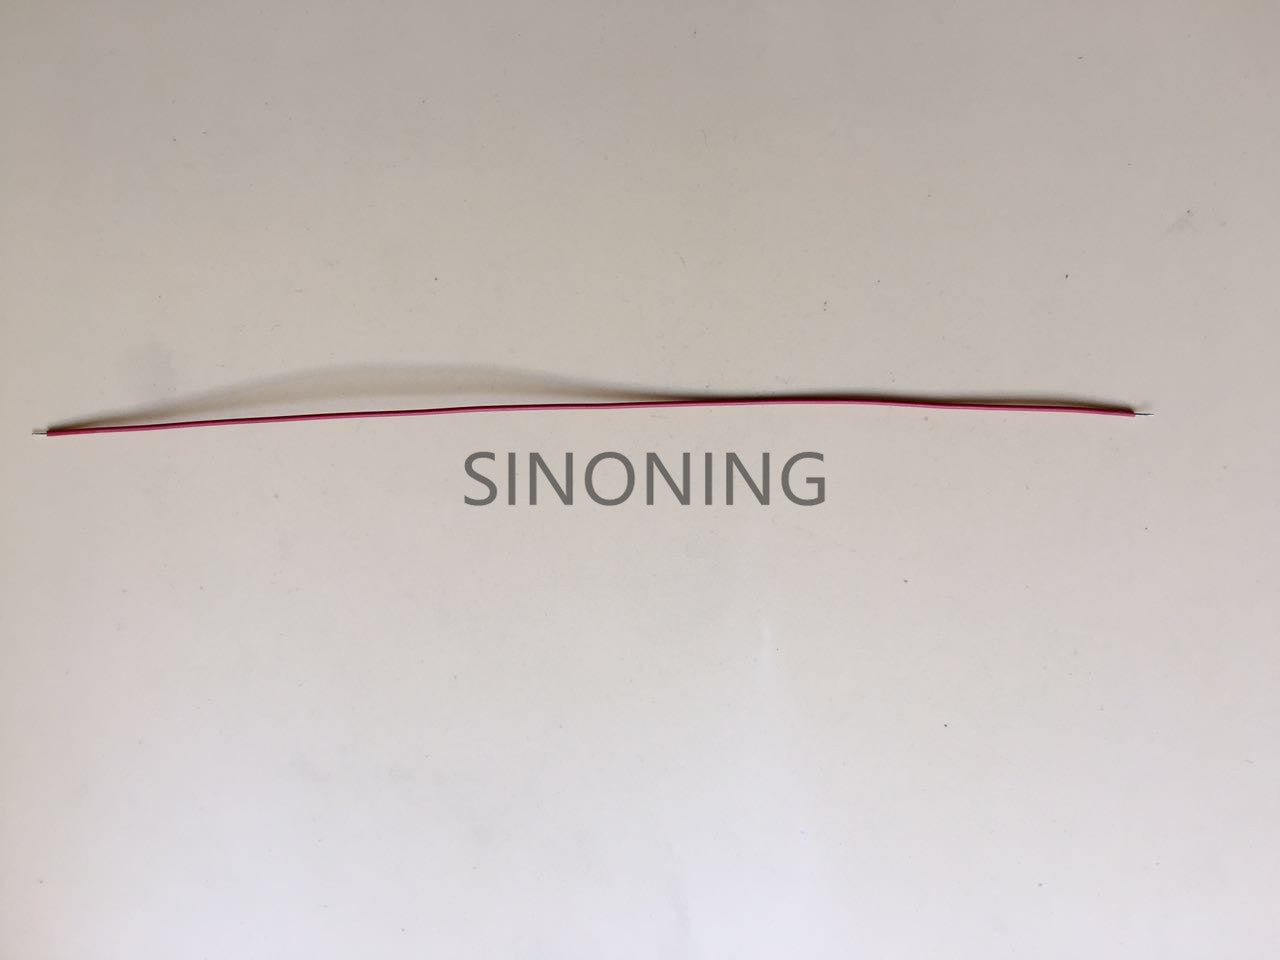 1000pcs 7/1.05MM GAUGE WIRE RED 20cm tin plating STRANDED COPPER ...